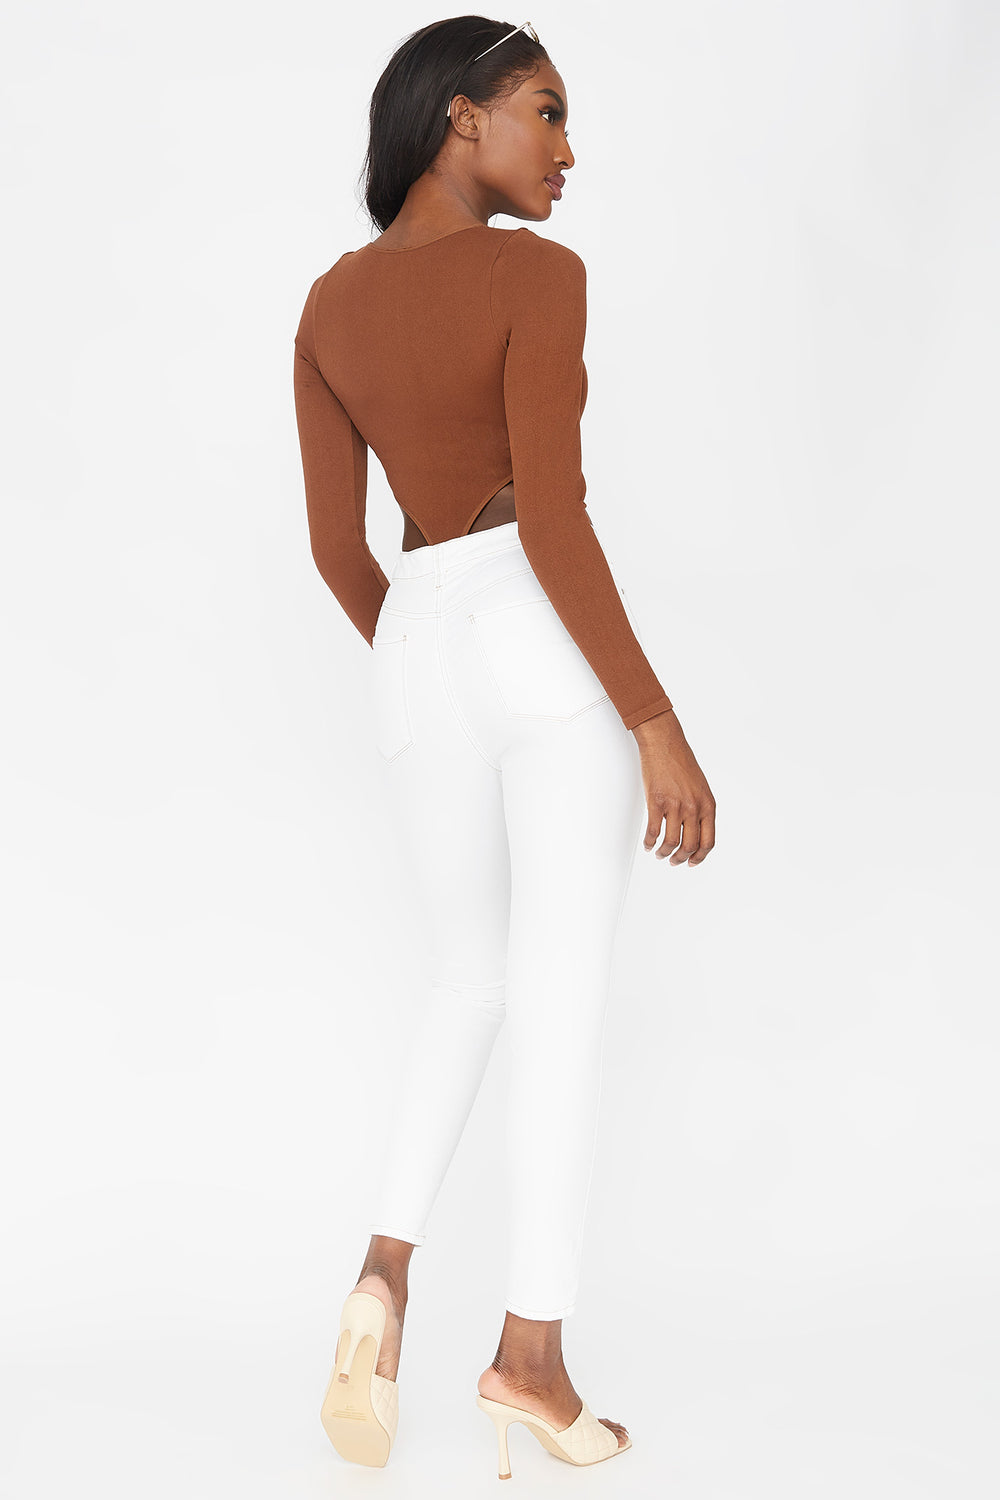 Refuge Miami High-Rise Coloured Skinny Jean White